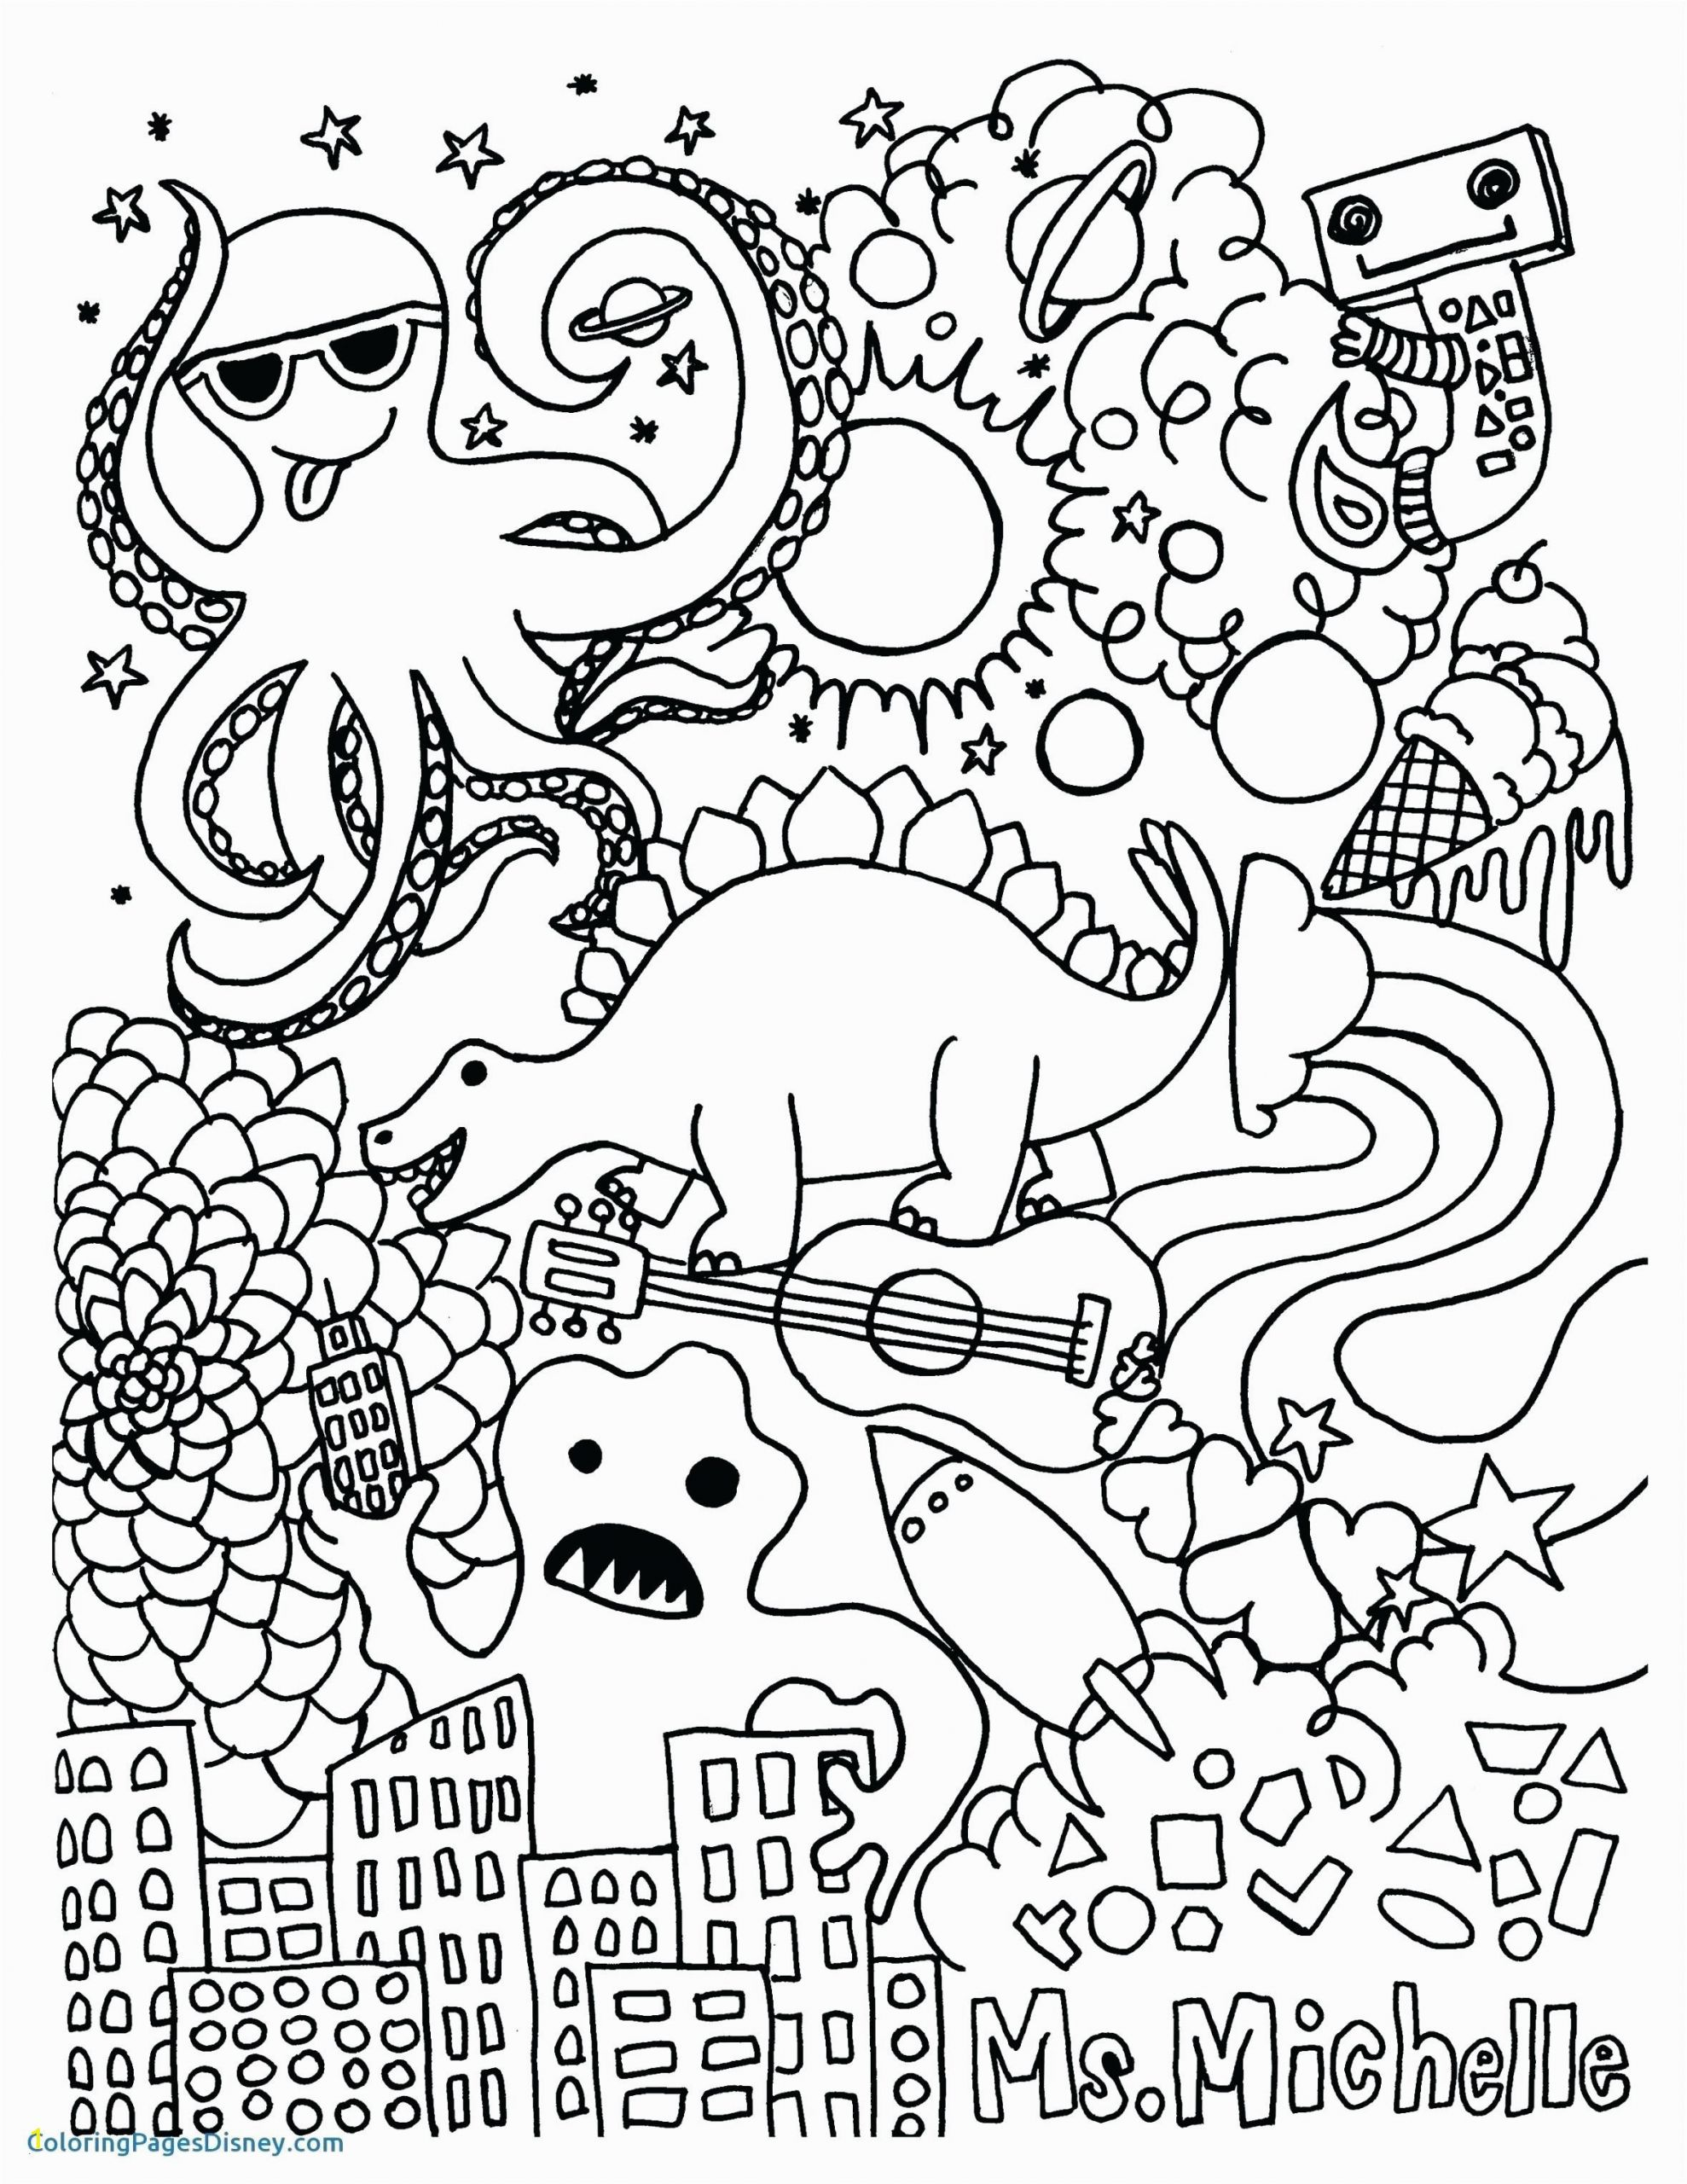 trick or treat safety coloring page awesome pages free beautiful gorgeous dot art marker christmas tulippaper co free